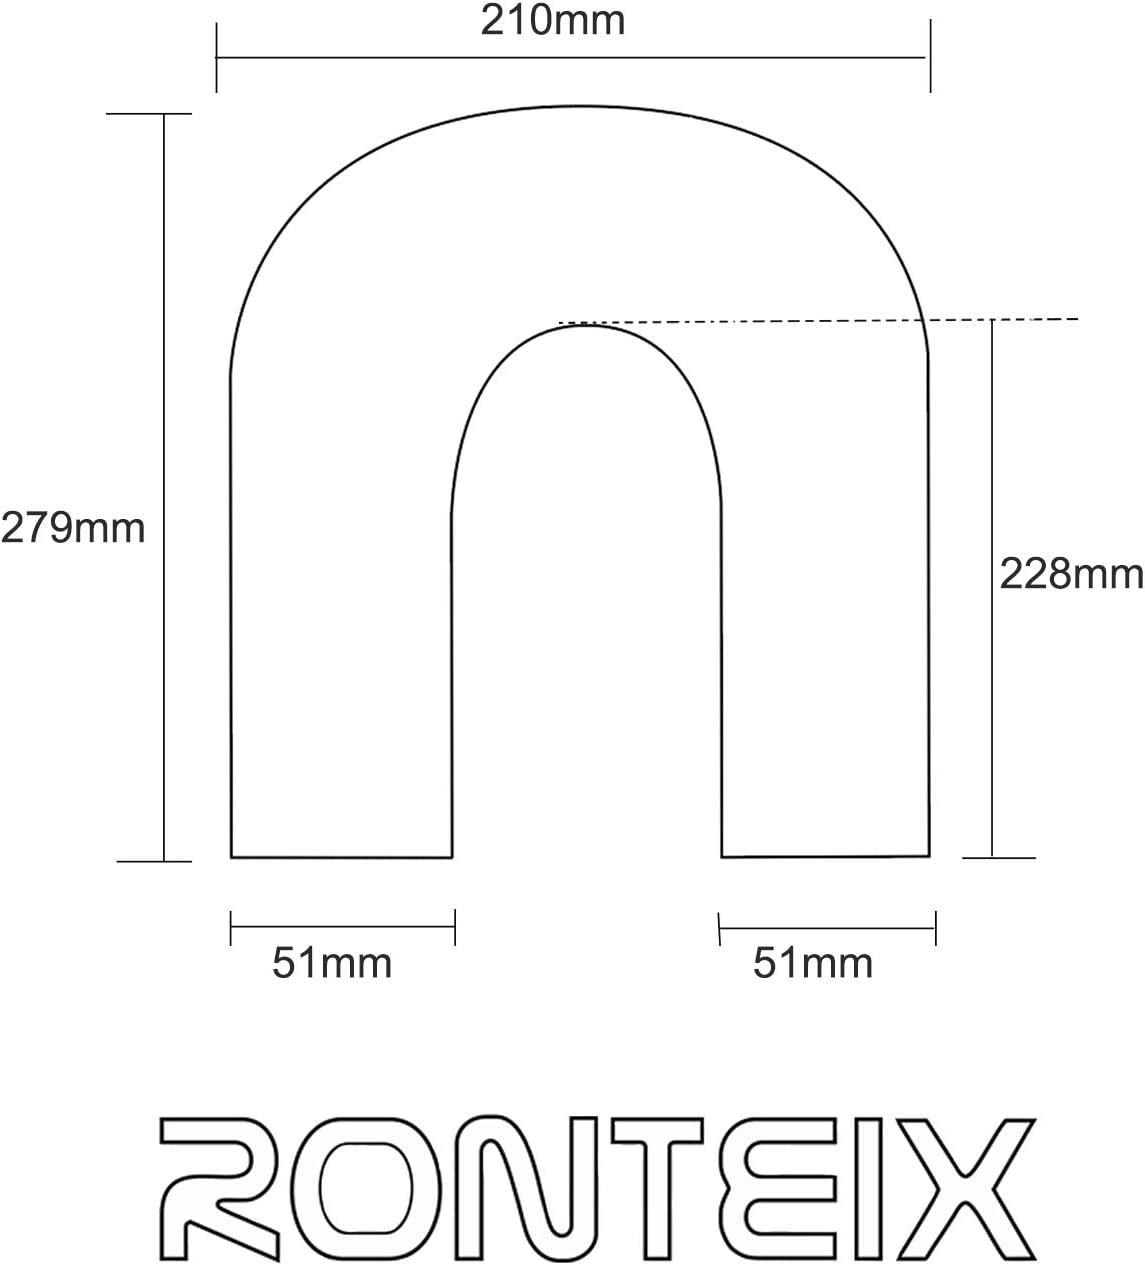 102mm Ronteix Universal Polished Aluminum Elbow Pipe Tubing,90 Degree Bend Intercooler O.D.(4